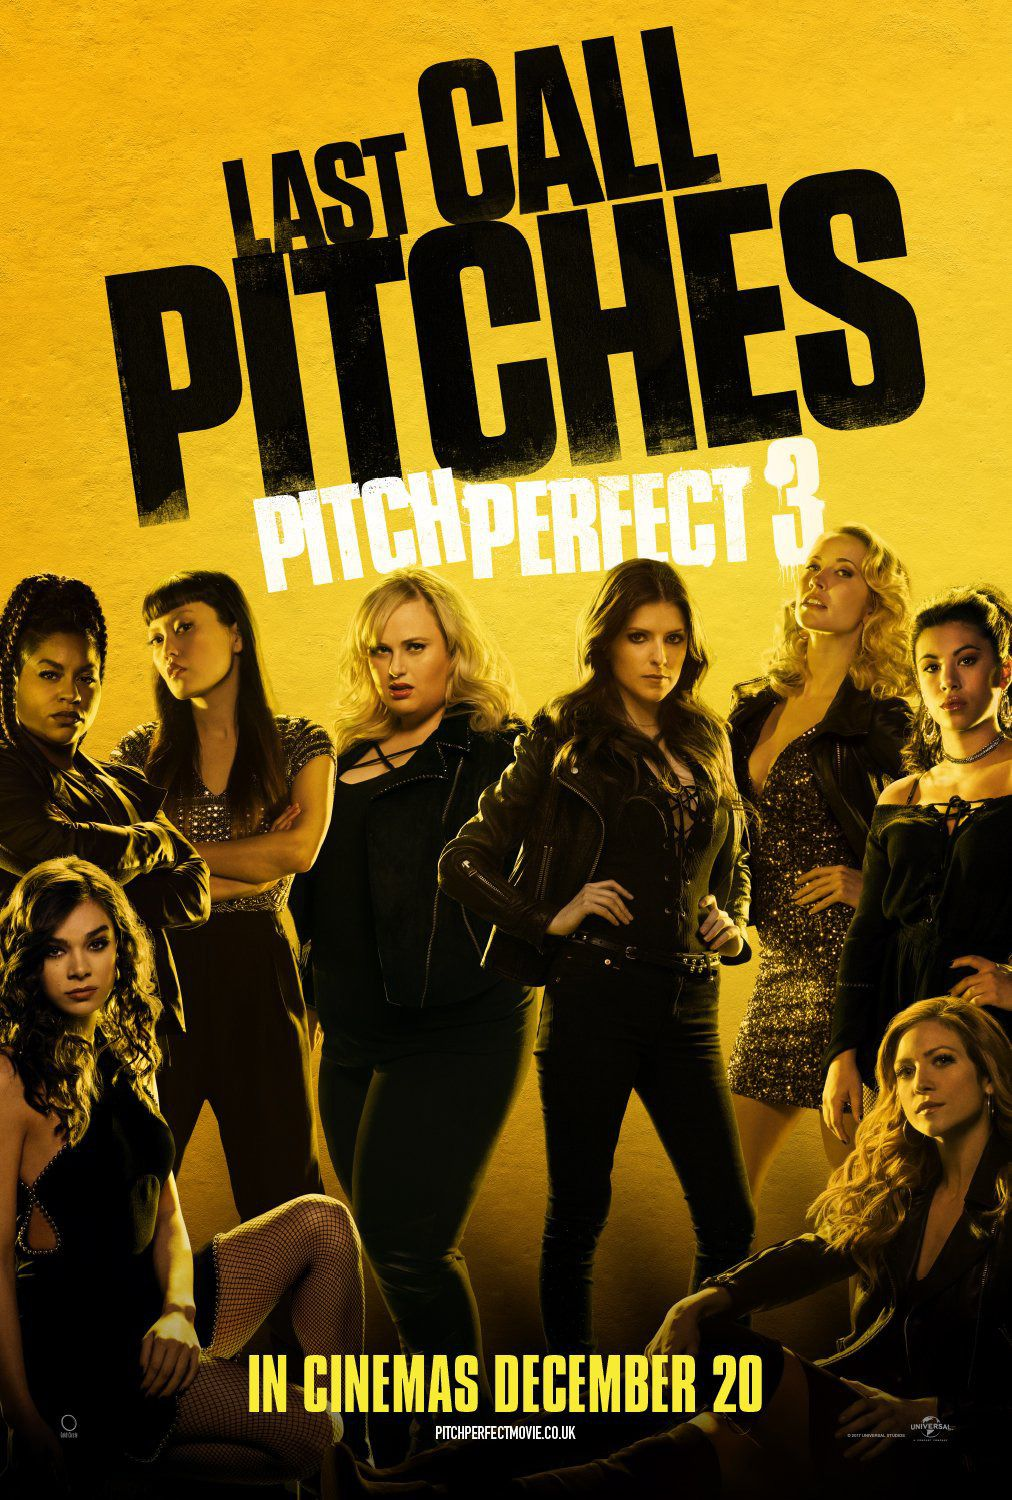 Pitch Perfect 3 - last call - Anna Kendrick - Rebel Wilson - Brittany Snow - Hailee Steinfeld - film poster